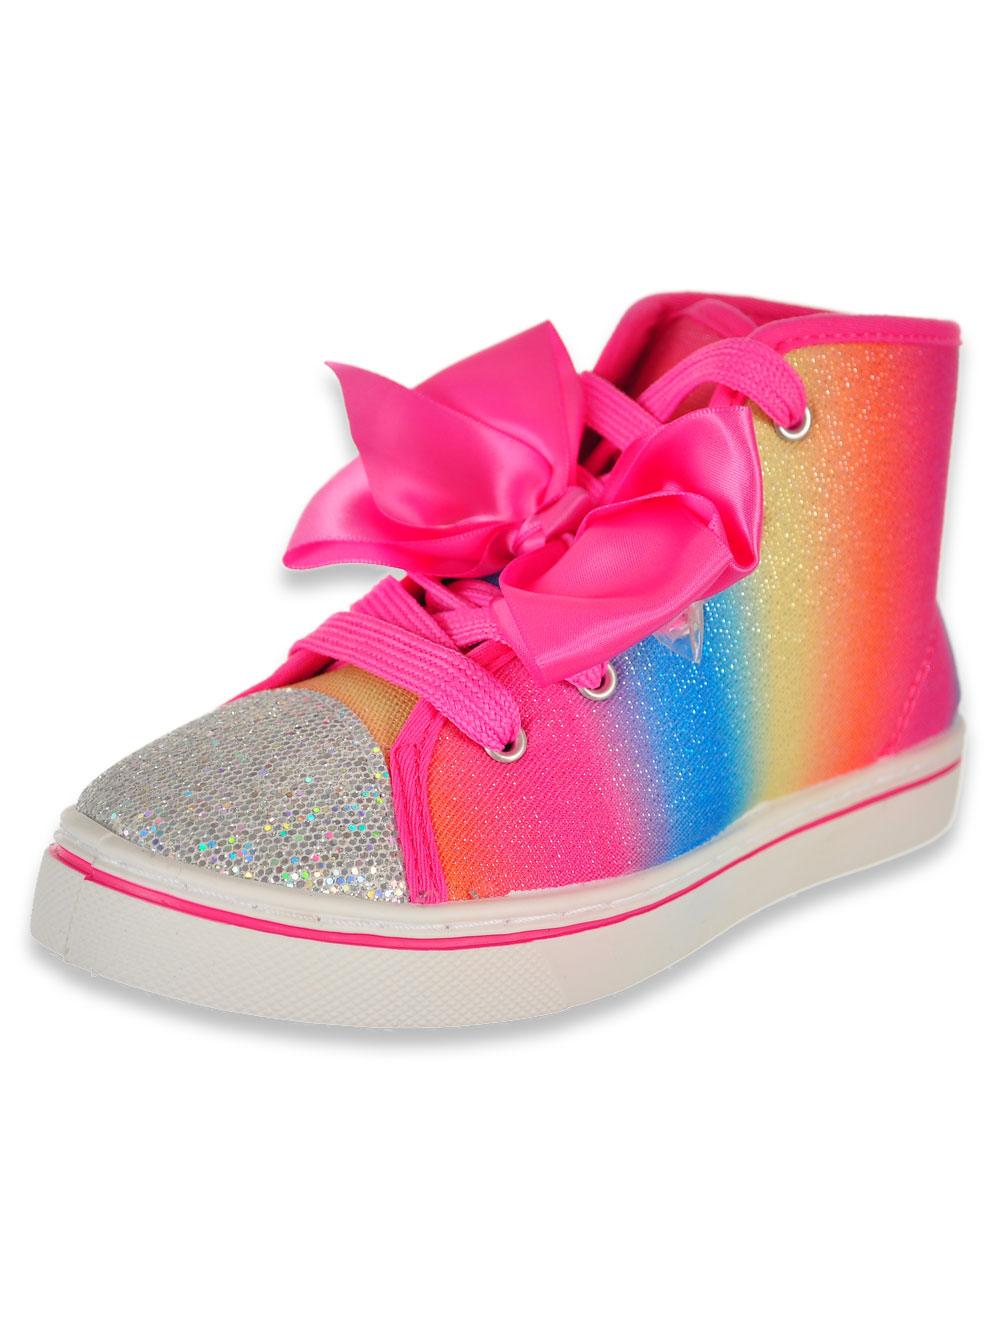 Girls Rainbow Style Hi Top Sneakers By Jojo Siwa In Multi From